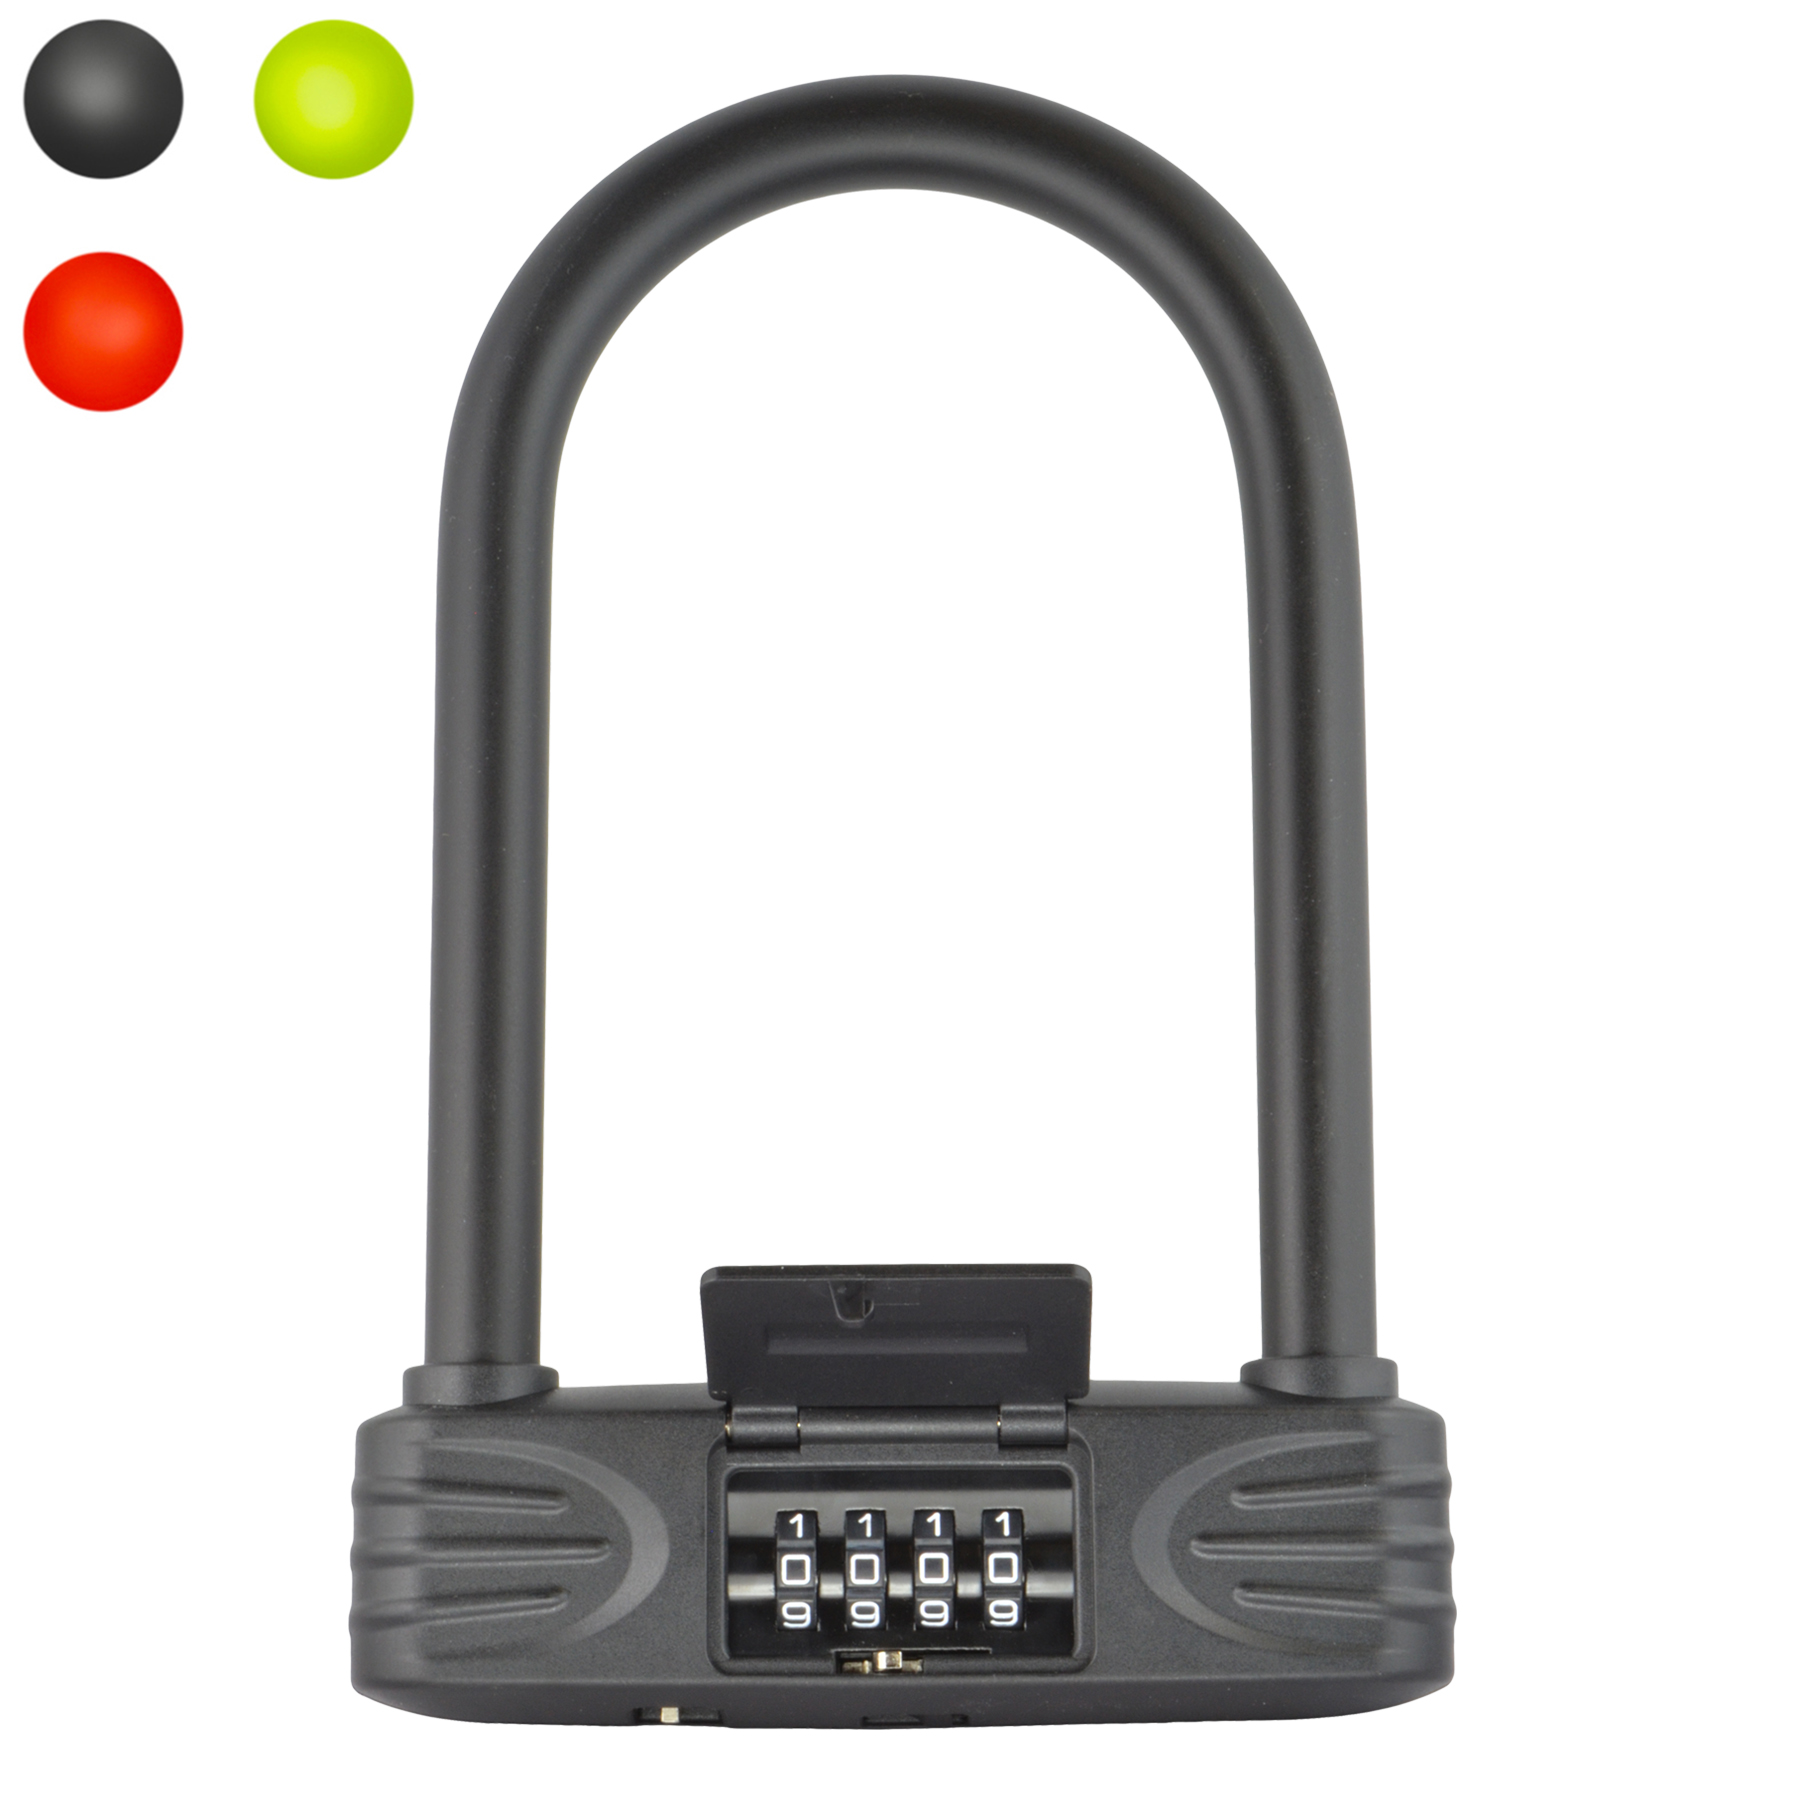 Lumintrail 16mm Heavy Duty 4-Digit Bicycle Bike Combination U-Lock with Optional 4-Foot or 7-Foot Braided Steel Security Cable